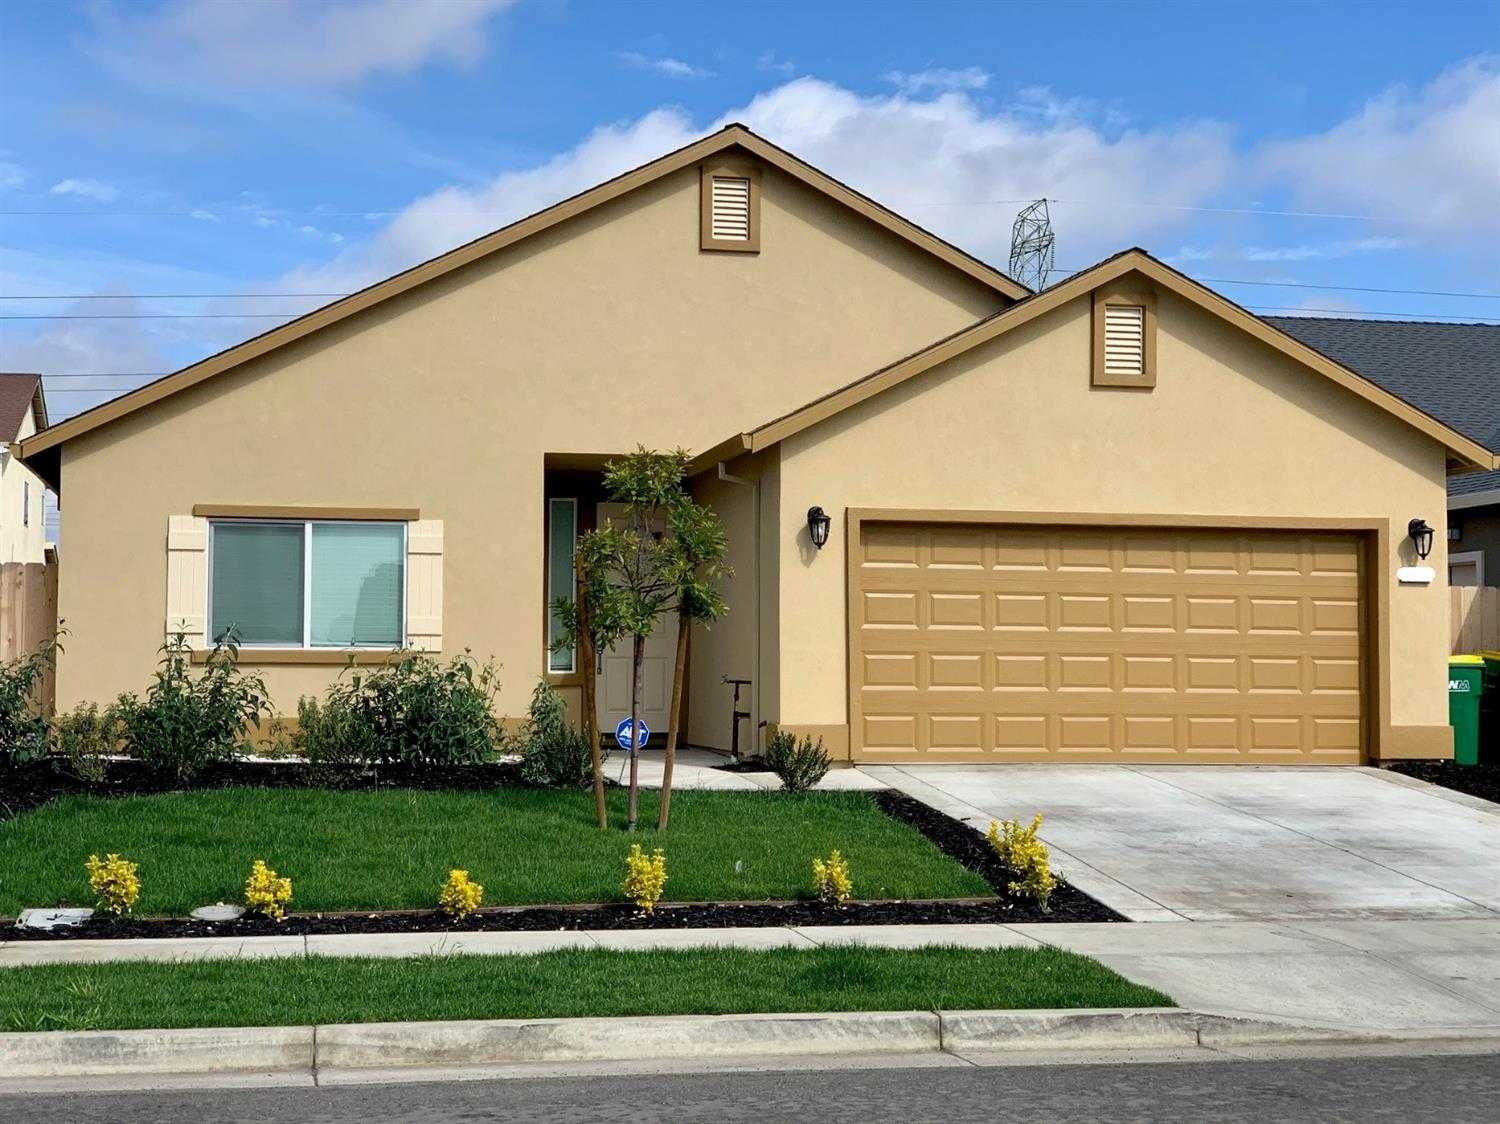 $394,900 - 4Br/3Ba -  for Sale in Stockton